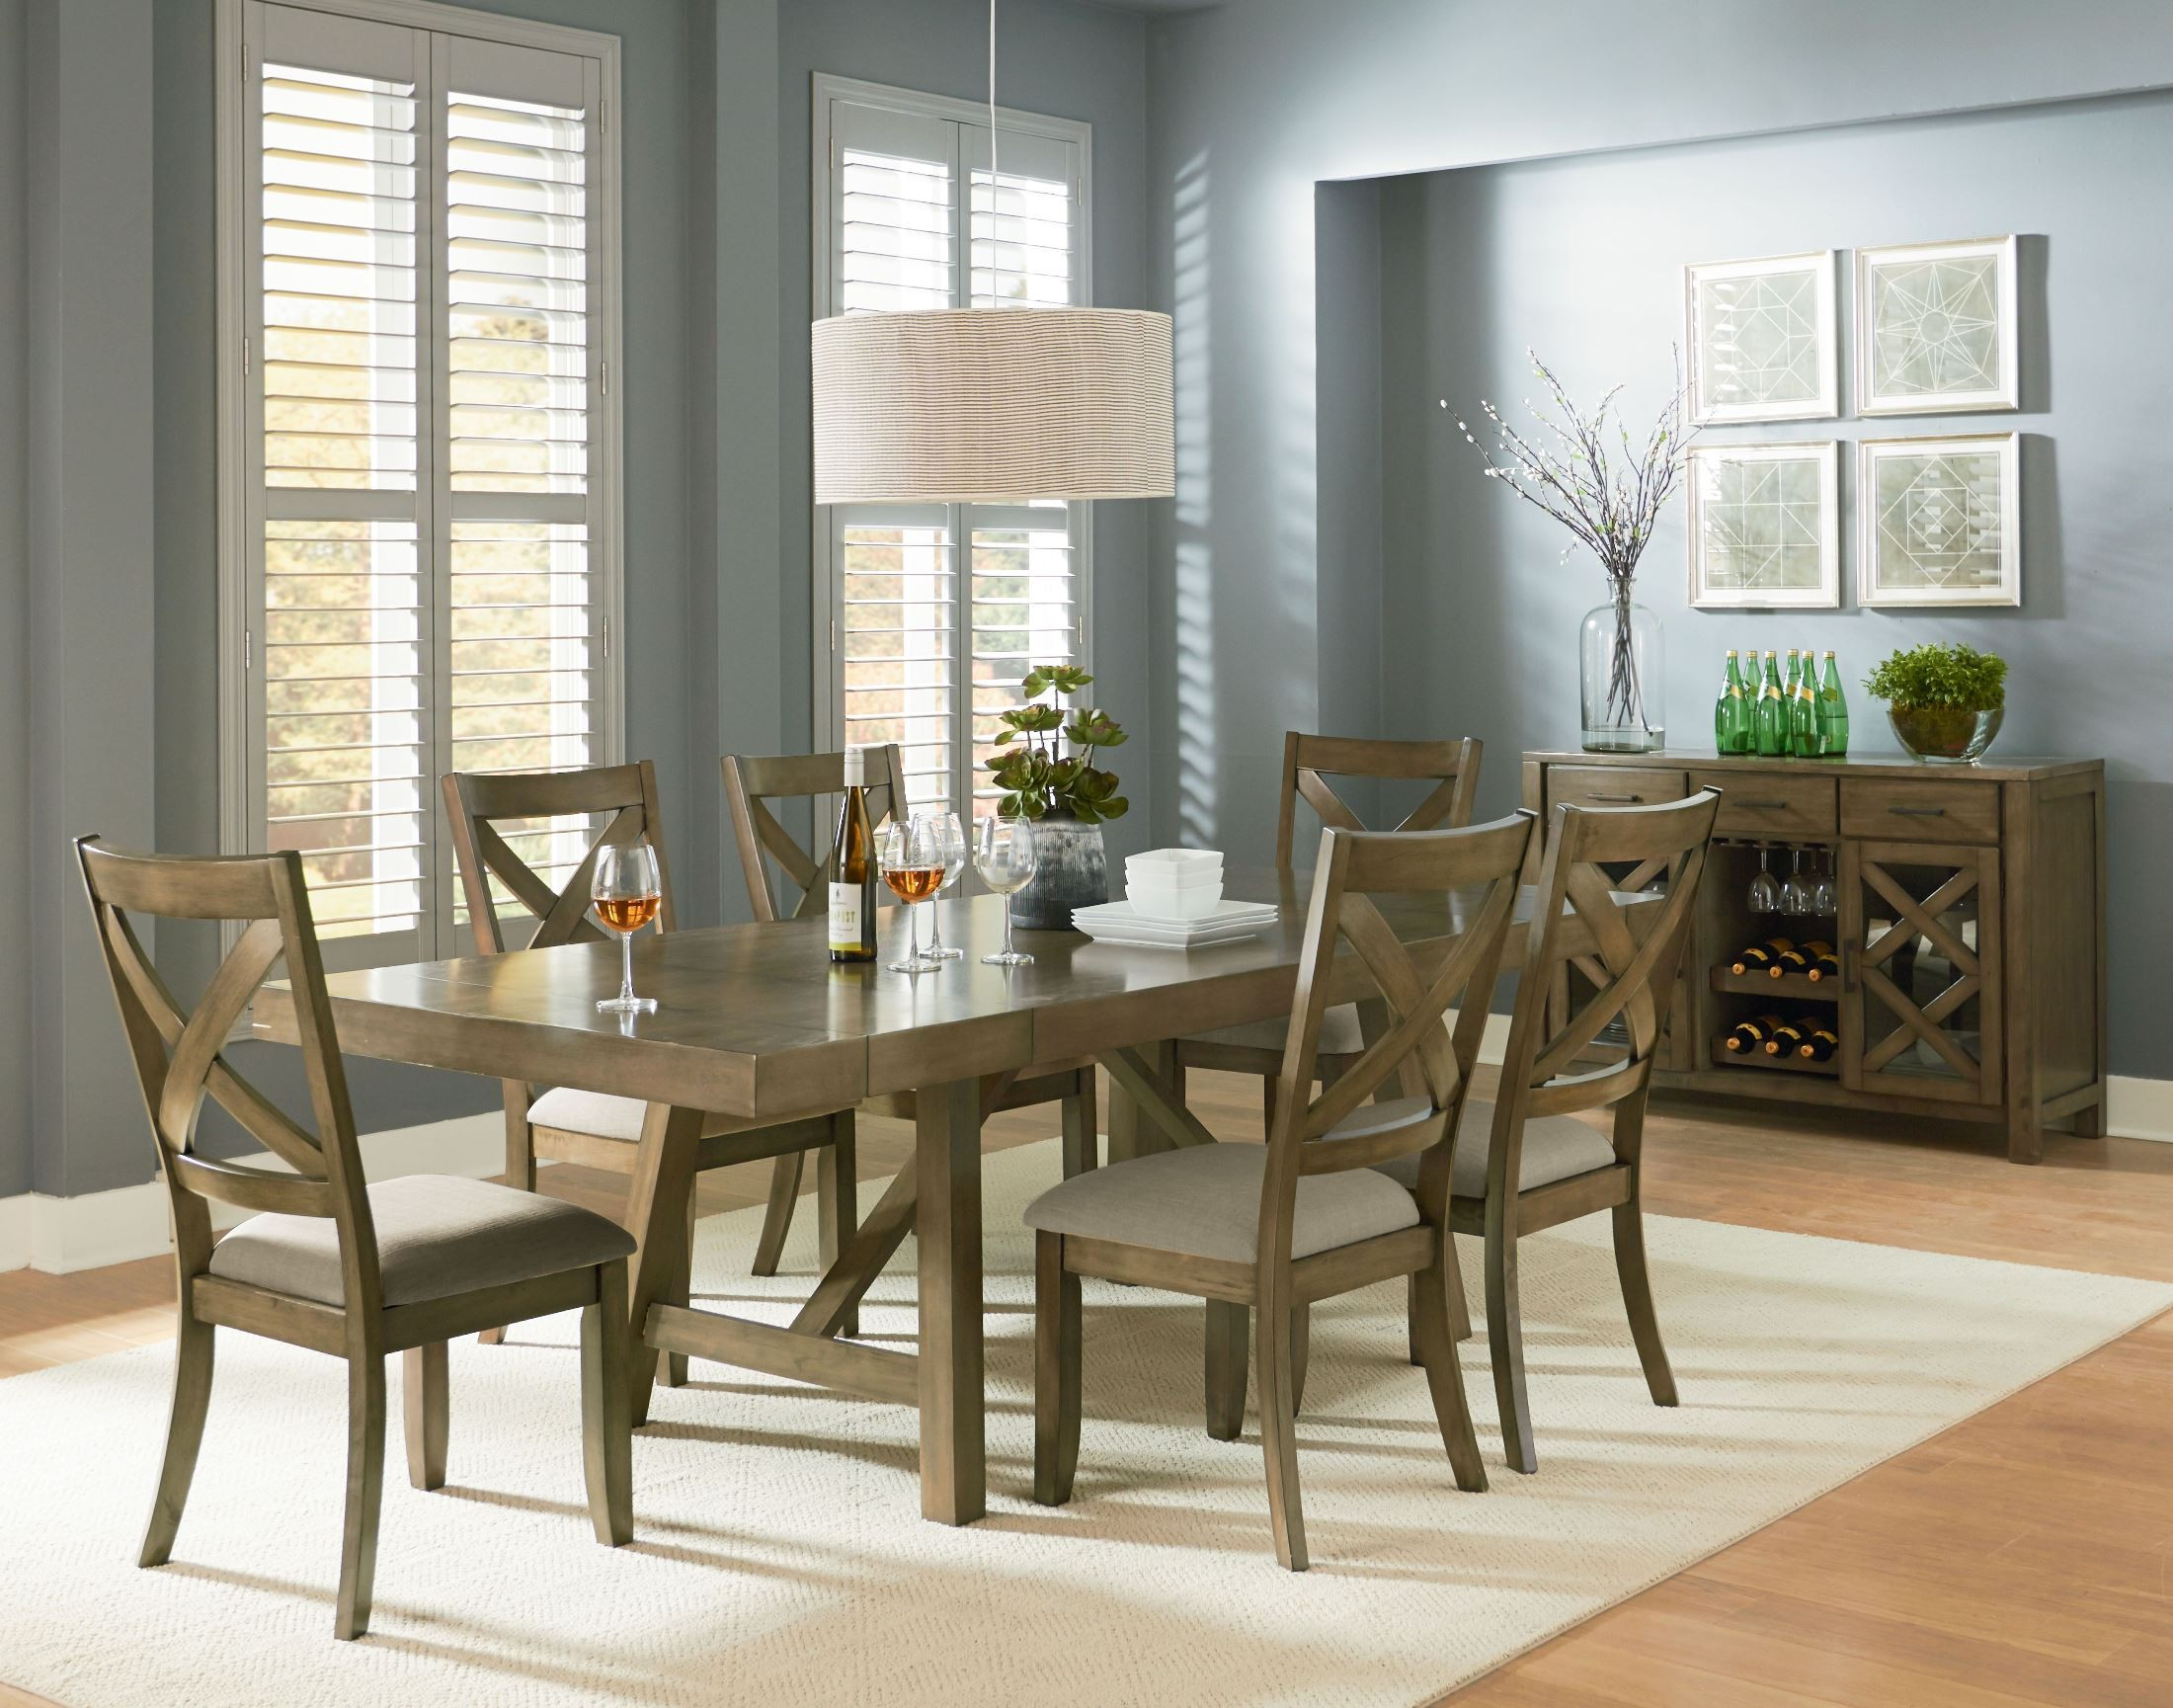 Omaha Weathered Burnished gray Extendable Trestle Dining  : 16680omahagrey16681tbl166846 xbkchrs16682sdbd from colemanfurniture.com size 2200 x 1729 jpeg 599kB